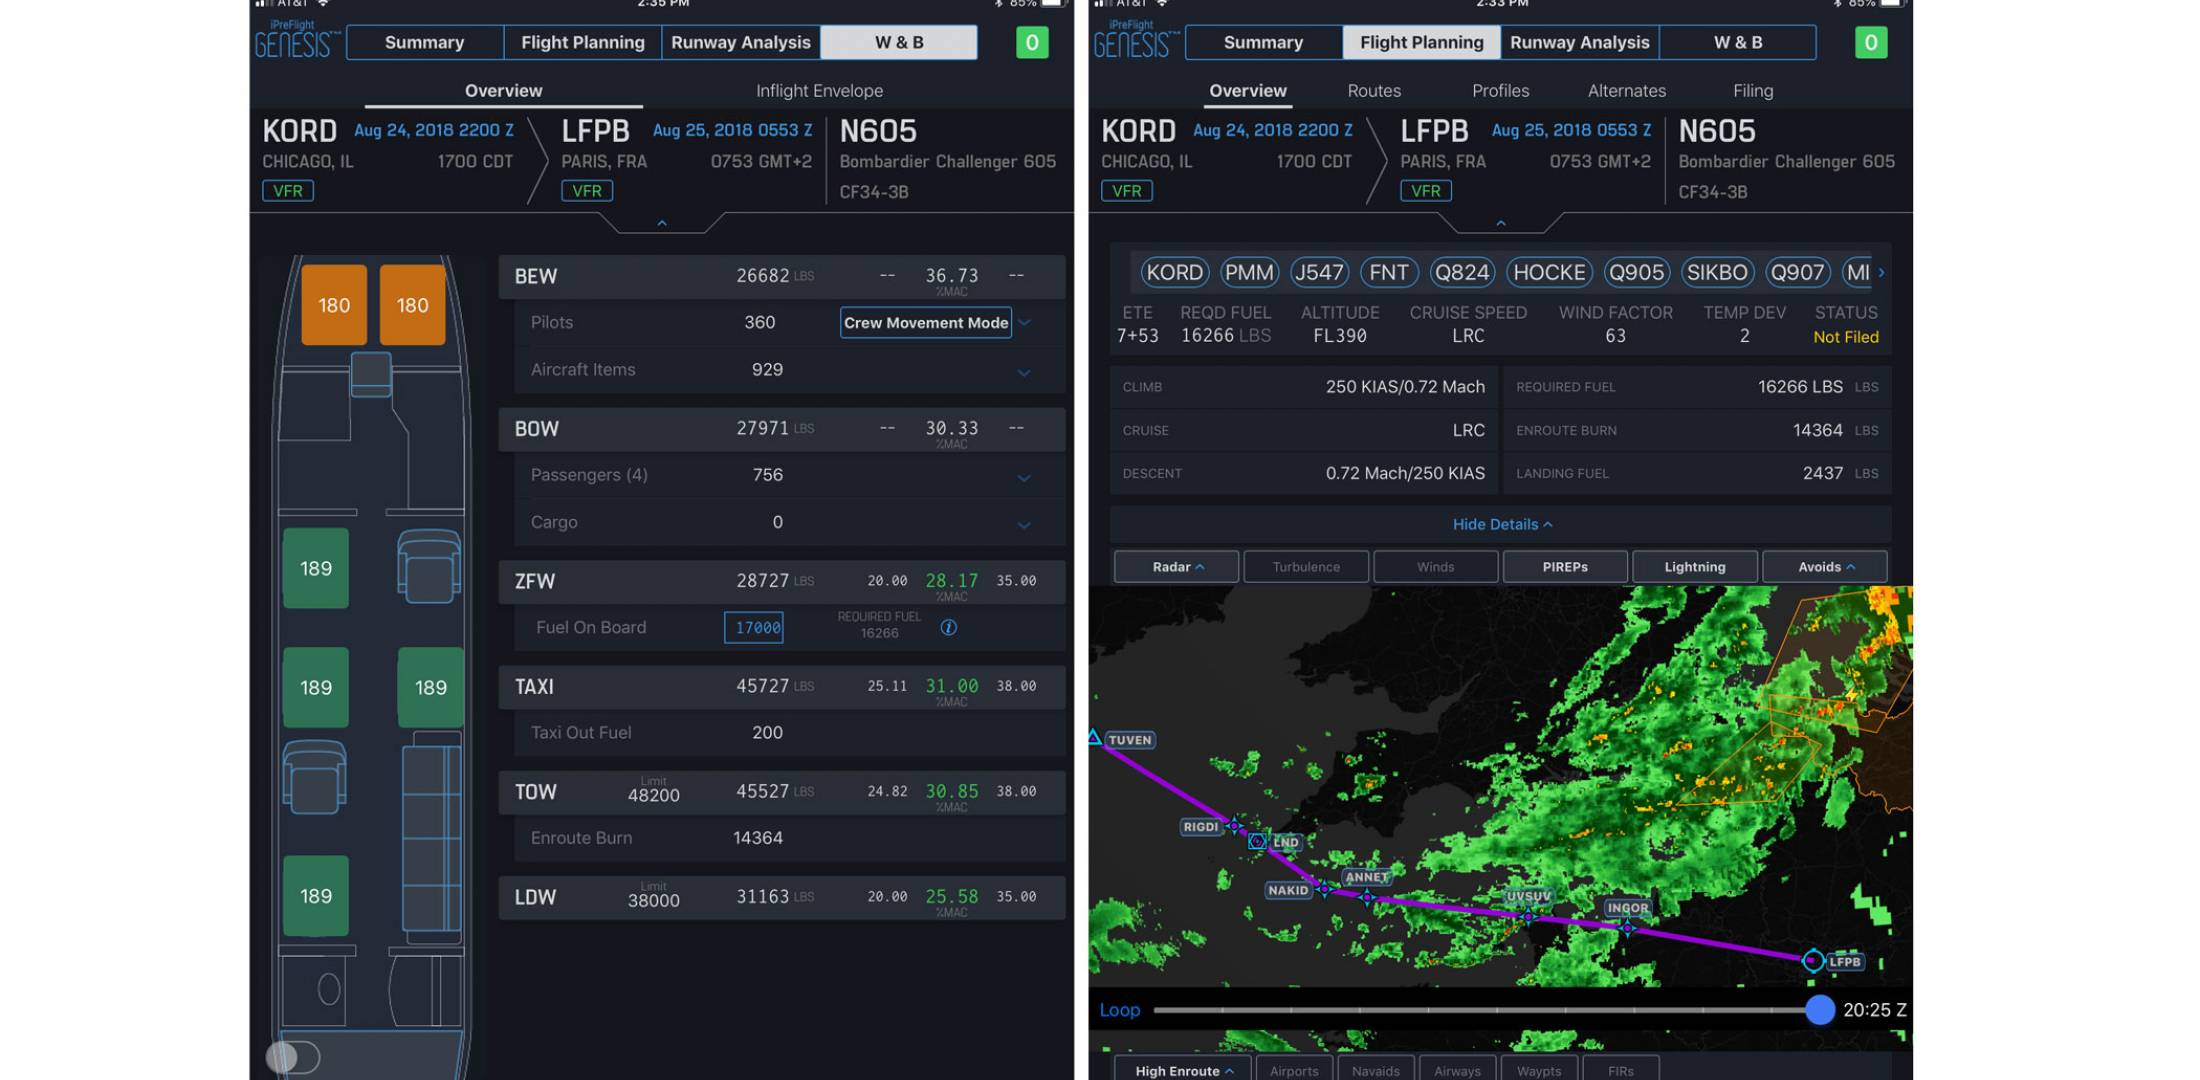 Left, a screen shot showing the Genesis weight and balance floorplan with crew, passenger, and baggage inputs as well as CG calculations. Right, a screen shot of the flight-planning module, which shows the route, graphical depiction with weather overlay, and user-selected constraints..